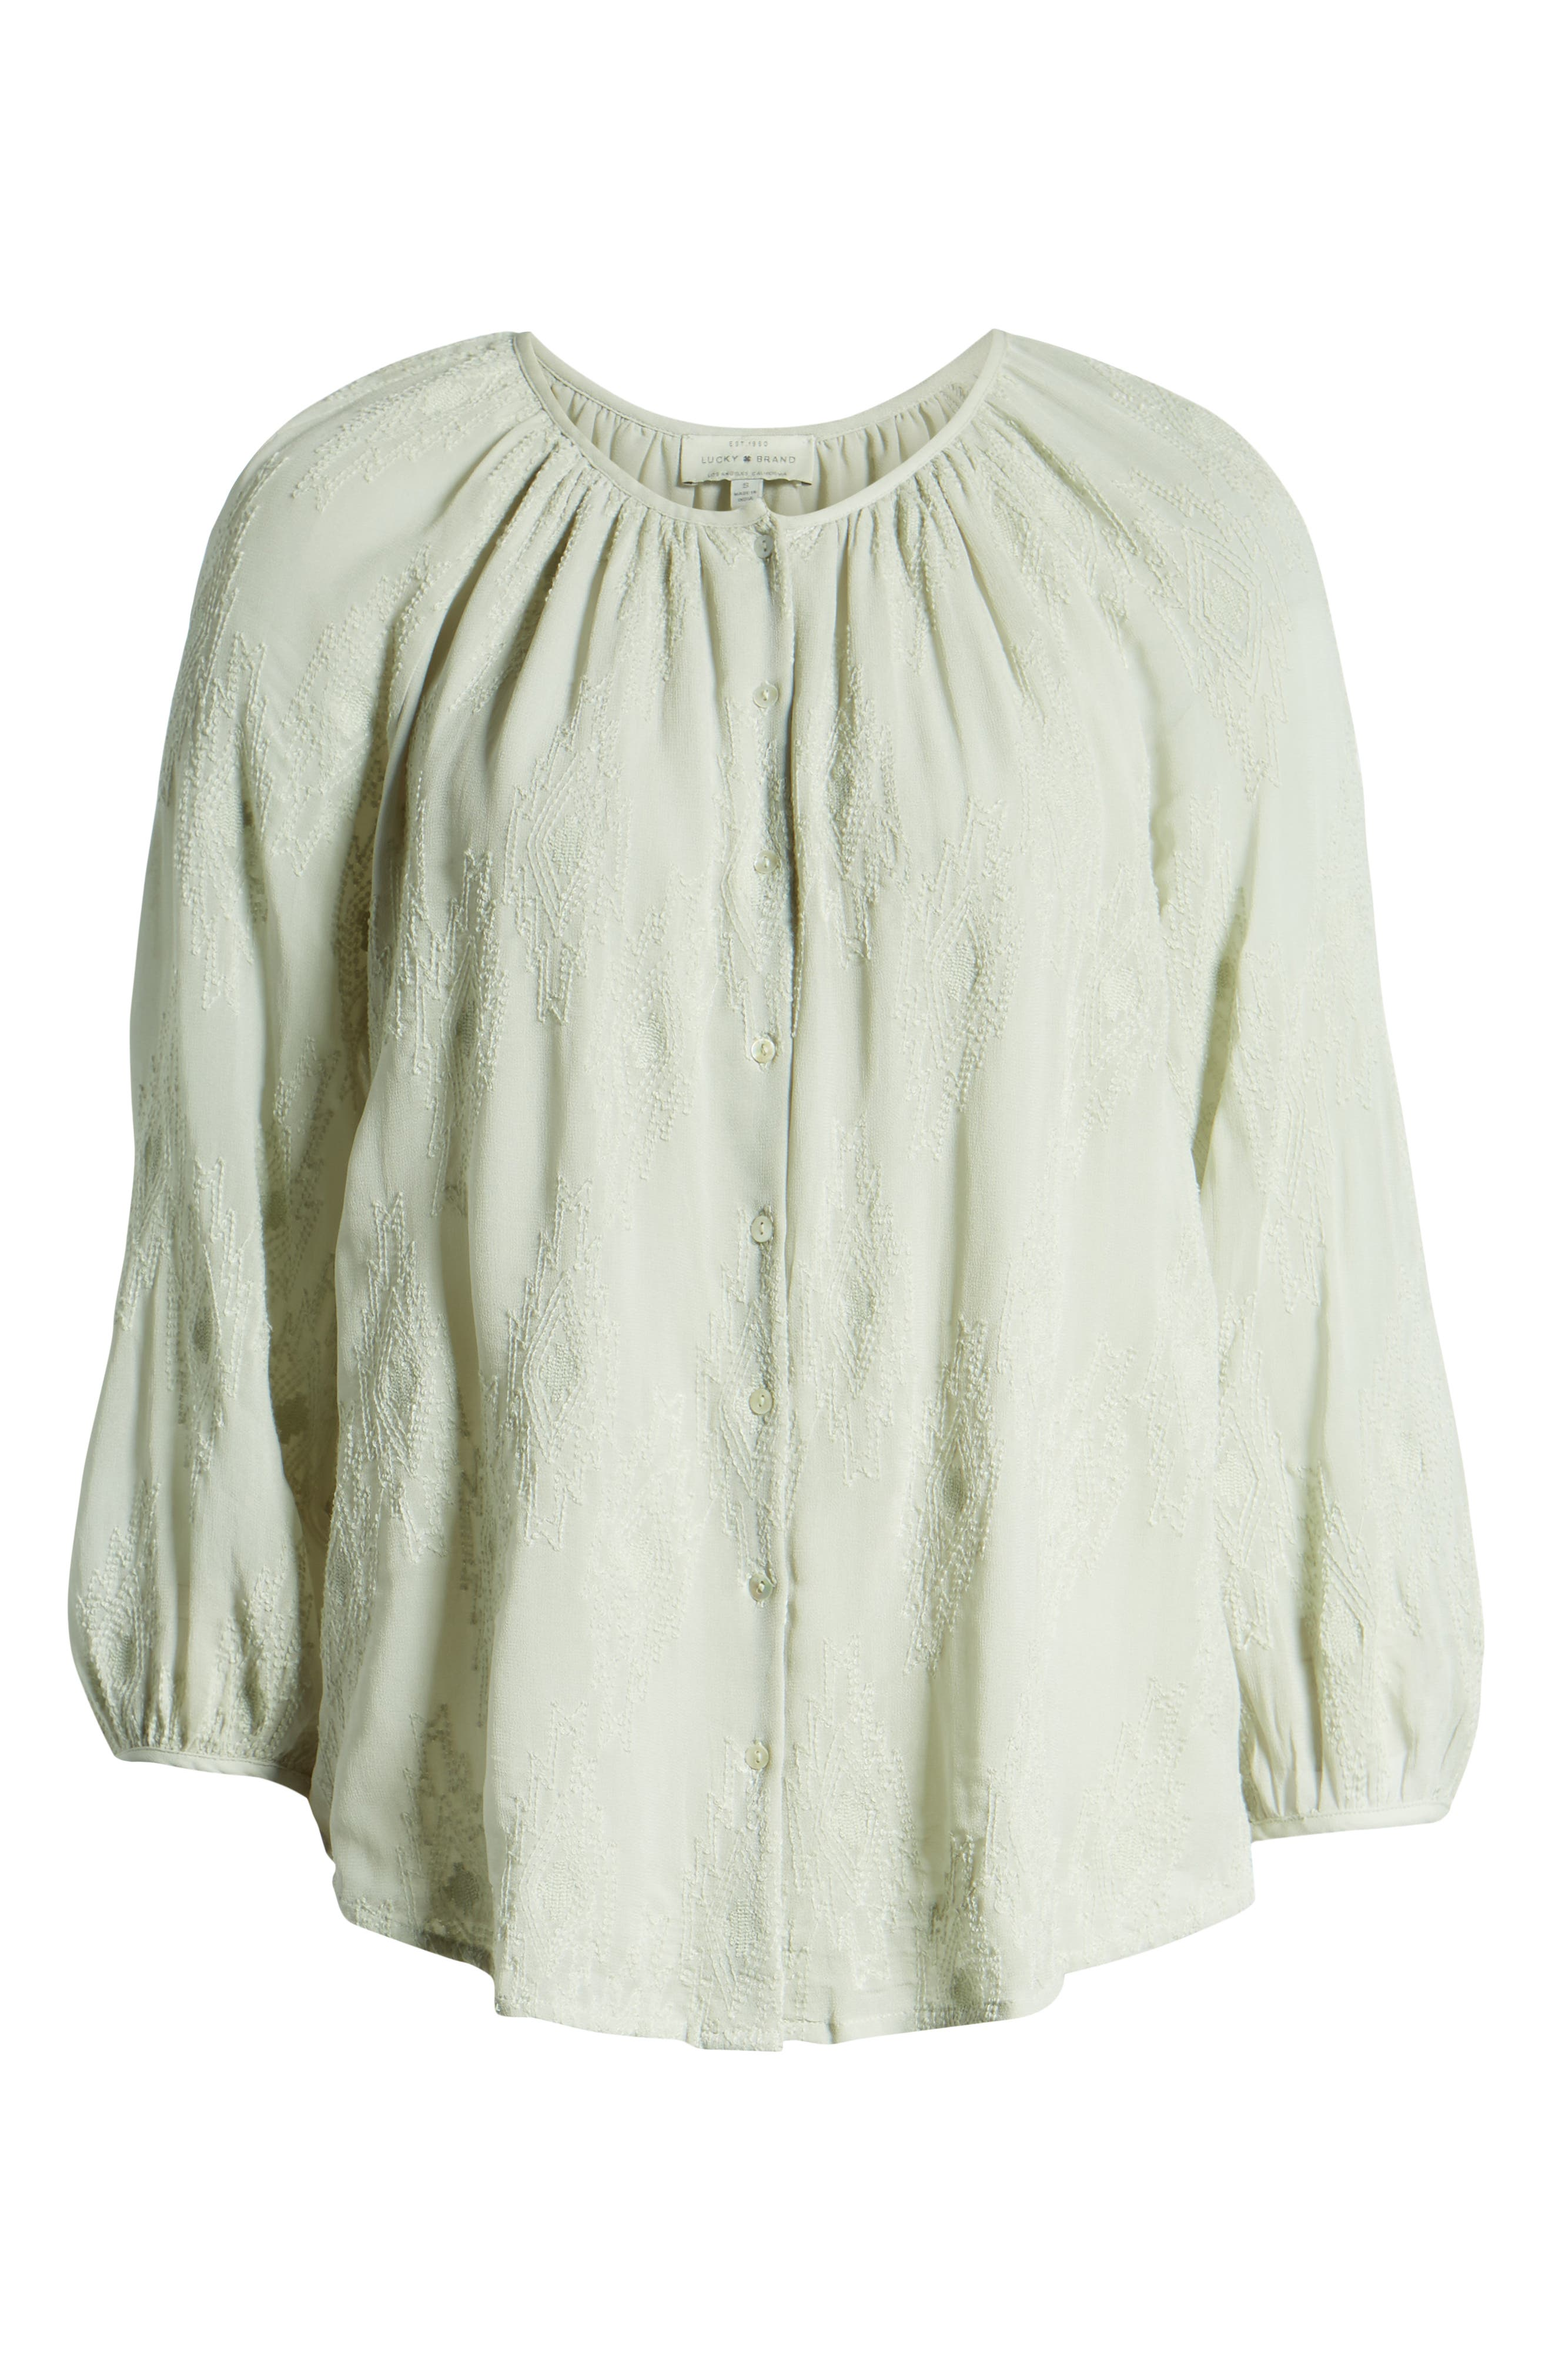 LUCKY BRAND, Geo Embroidered Top, Alternate thumbnail 6, color, PALE BLUE